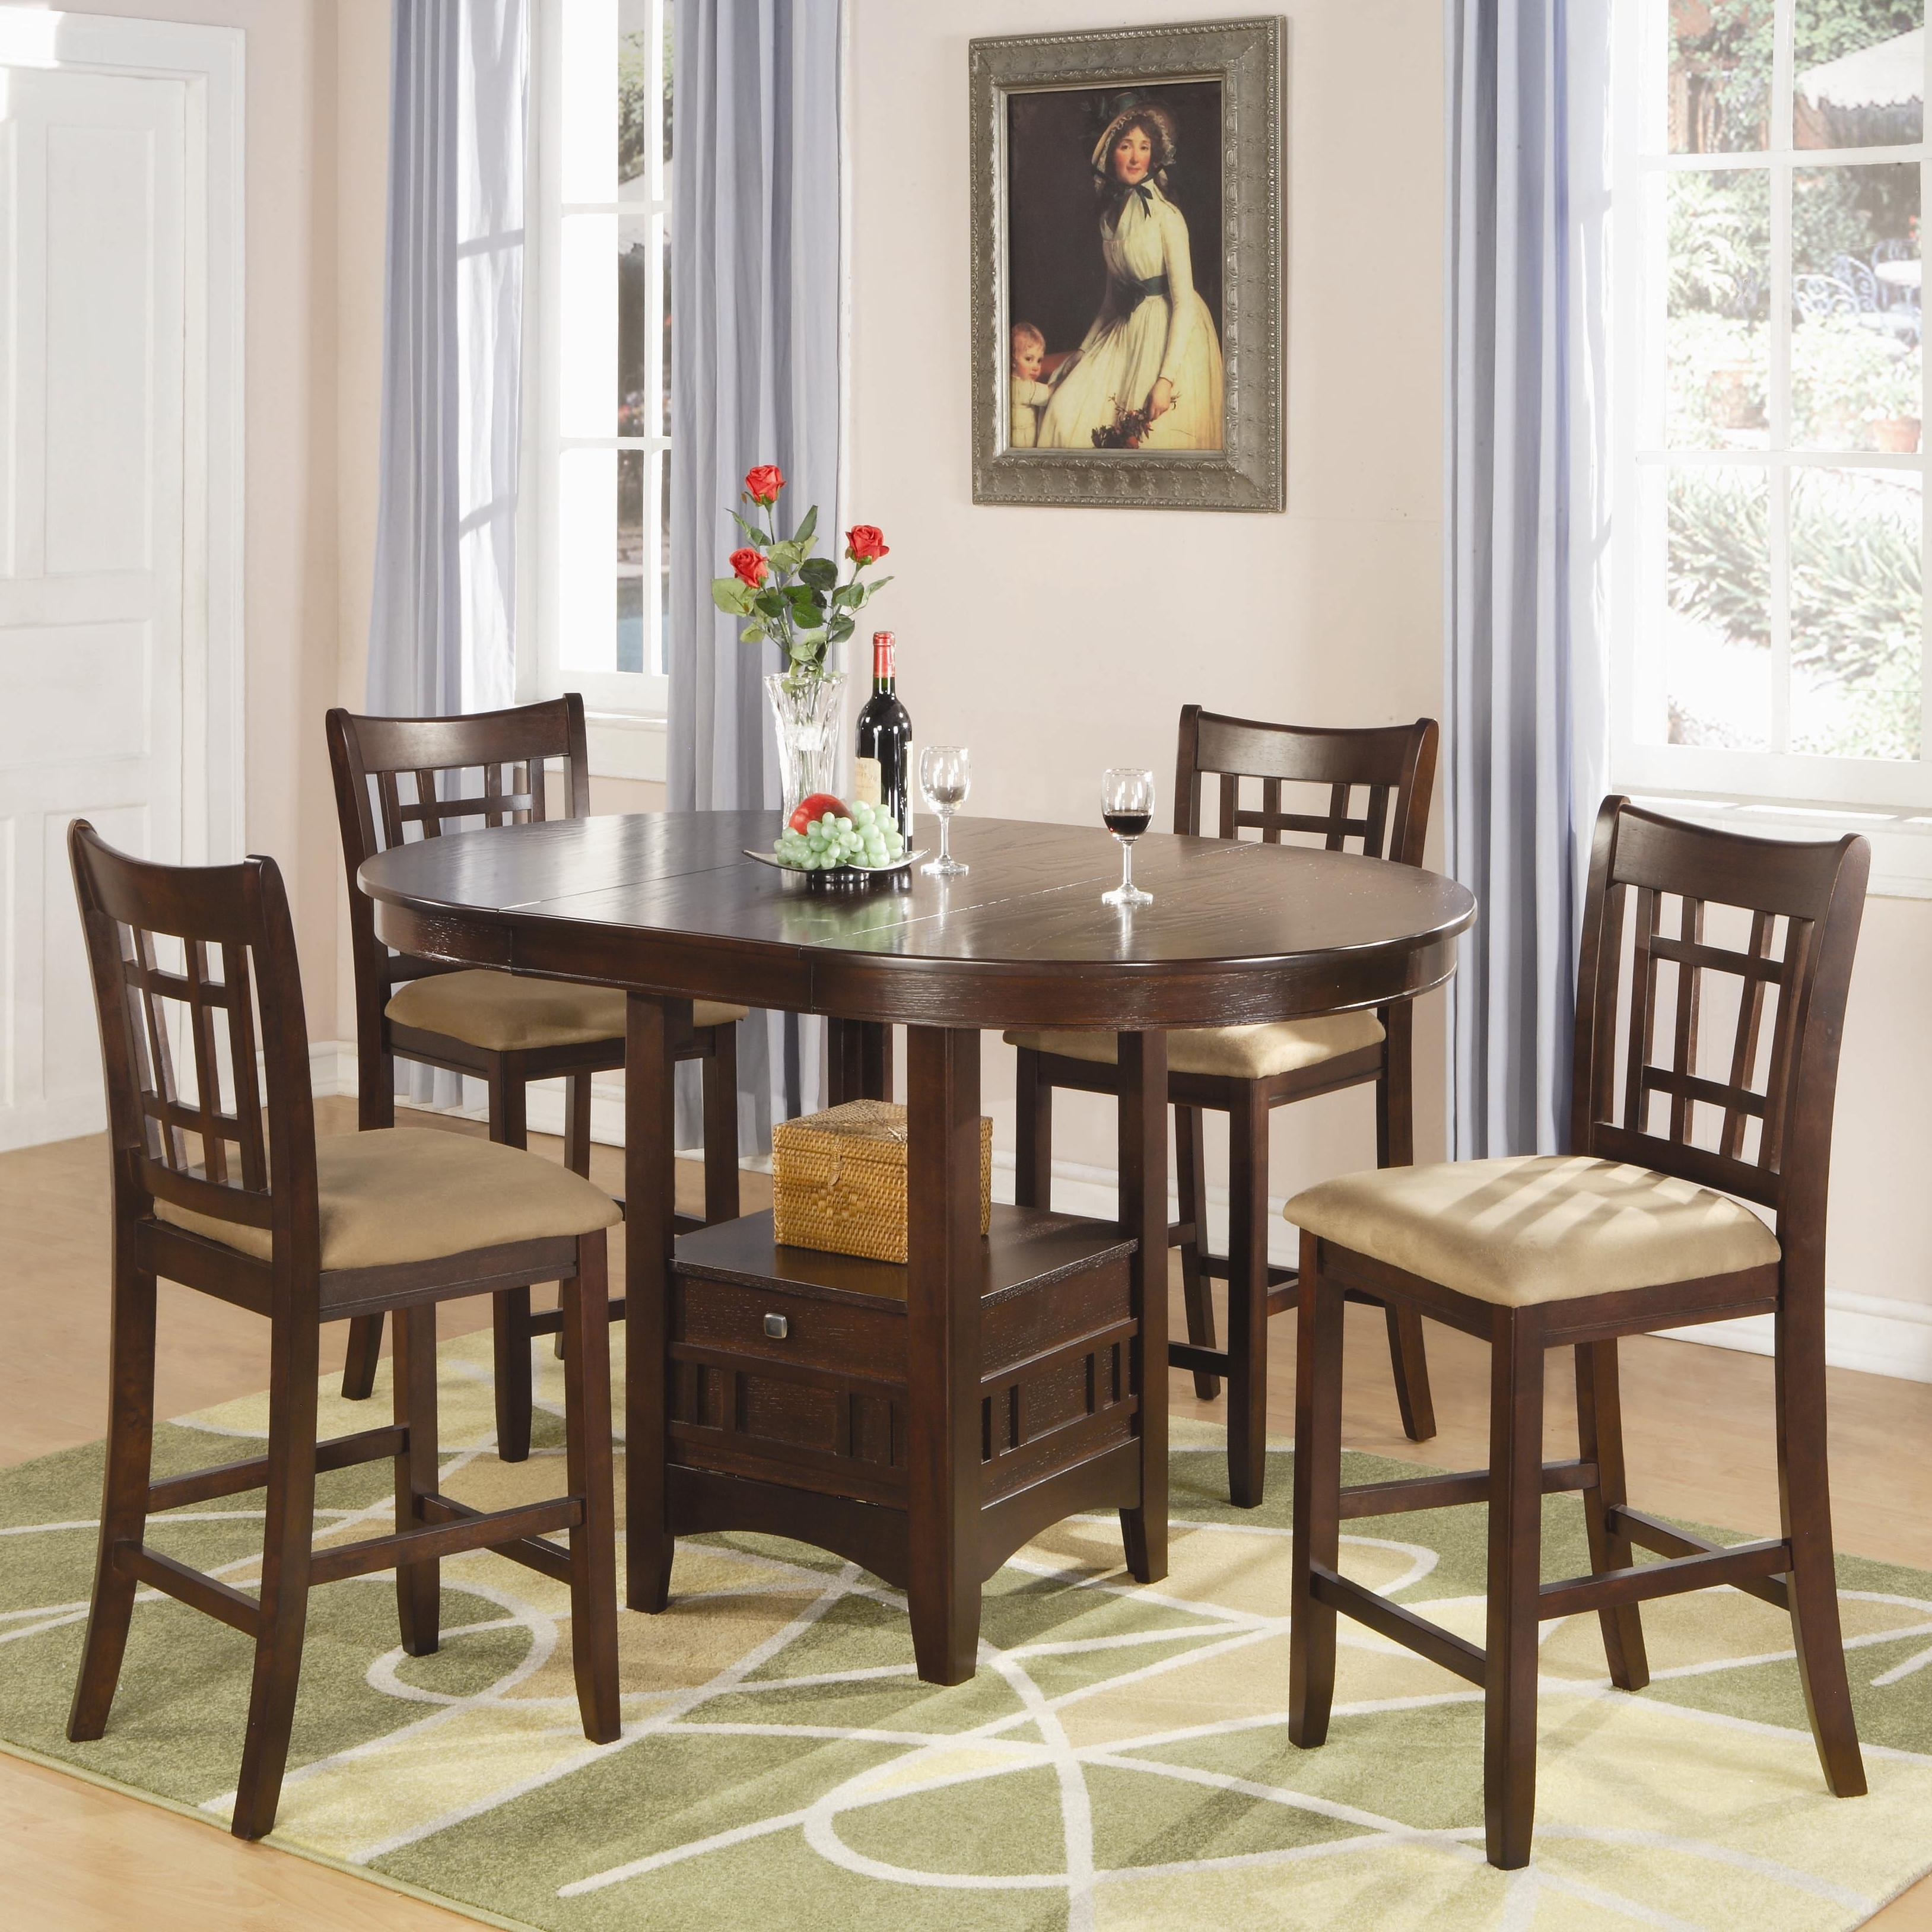 Newest Sofa Chairs With Dining Table Intended For Coaster – Find A Local Furniture Store With Coaster Fine Furniture (View 8 of 15)